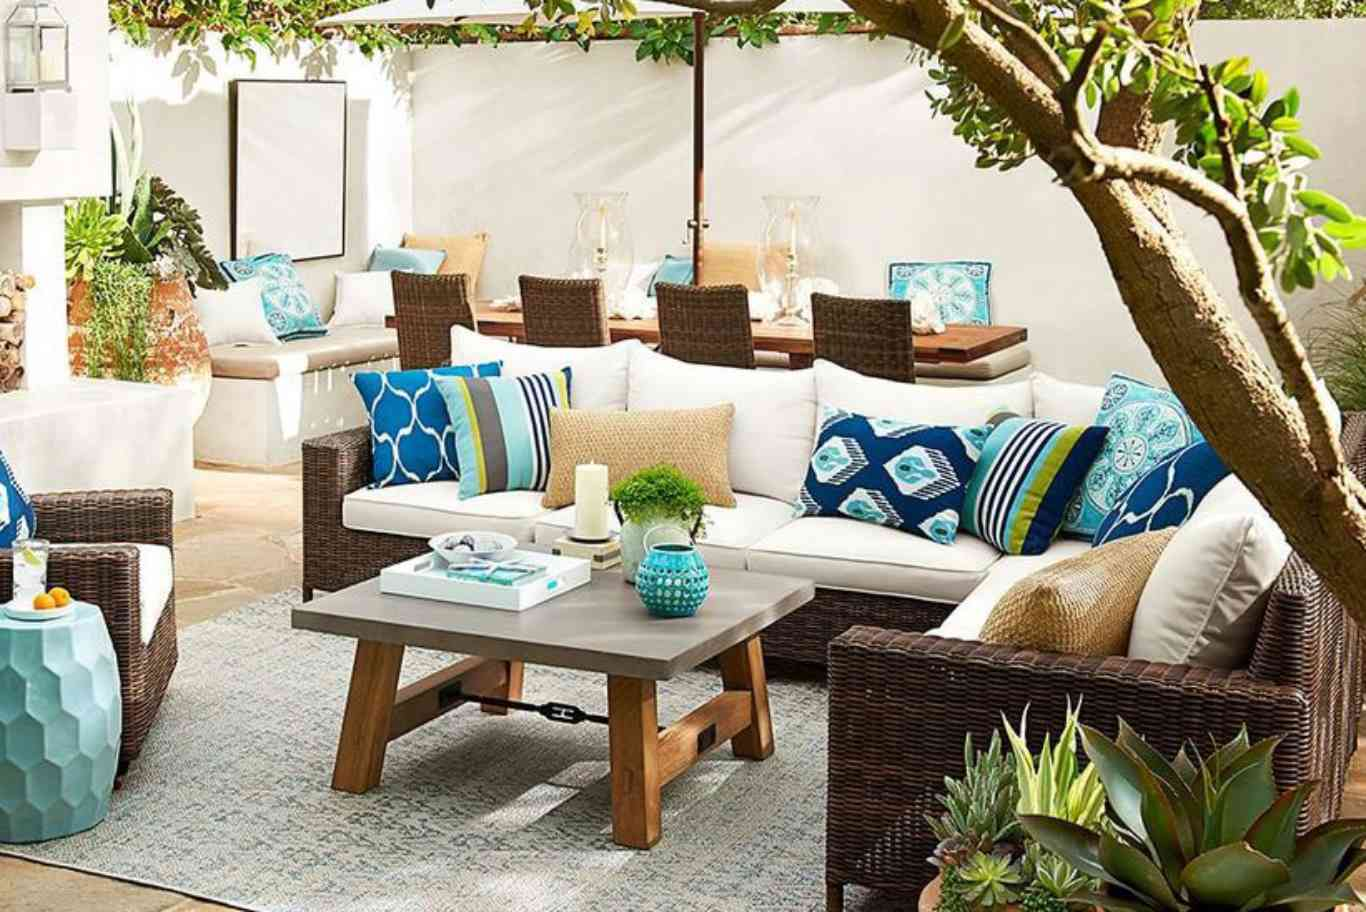 Tendencias deco para el verano a renovar tu hogar for Tendencias decoracion 2017